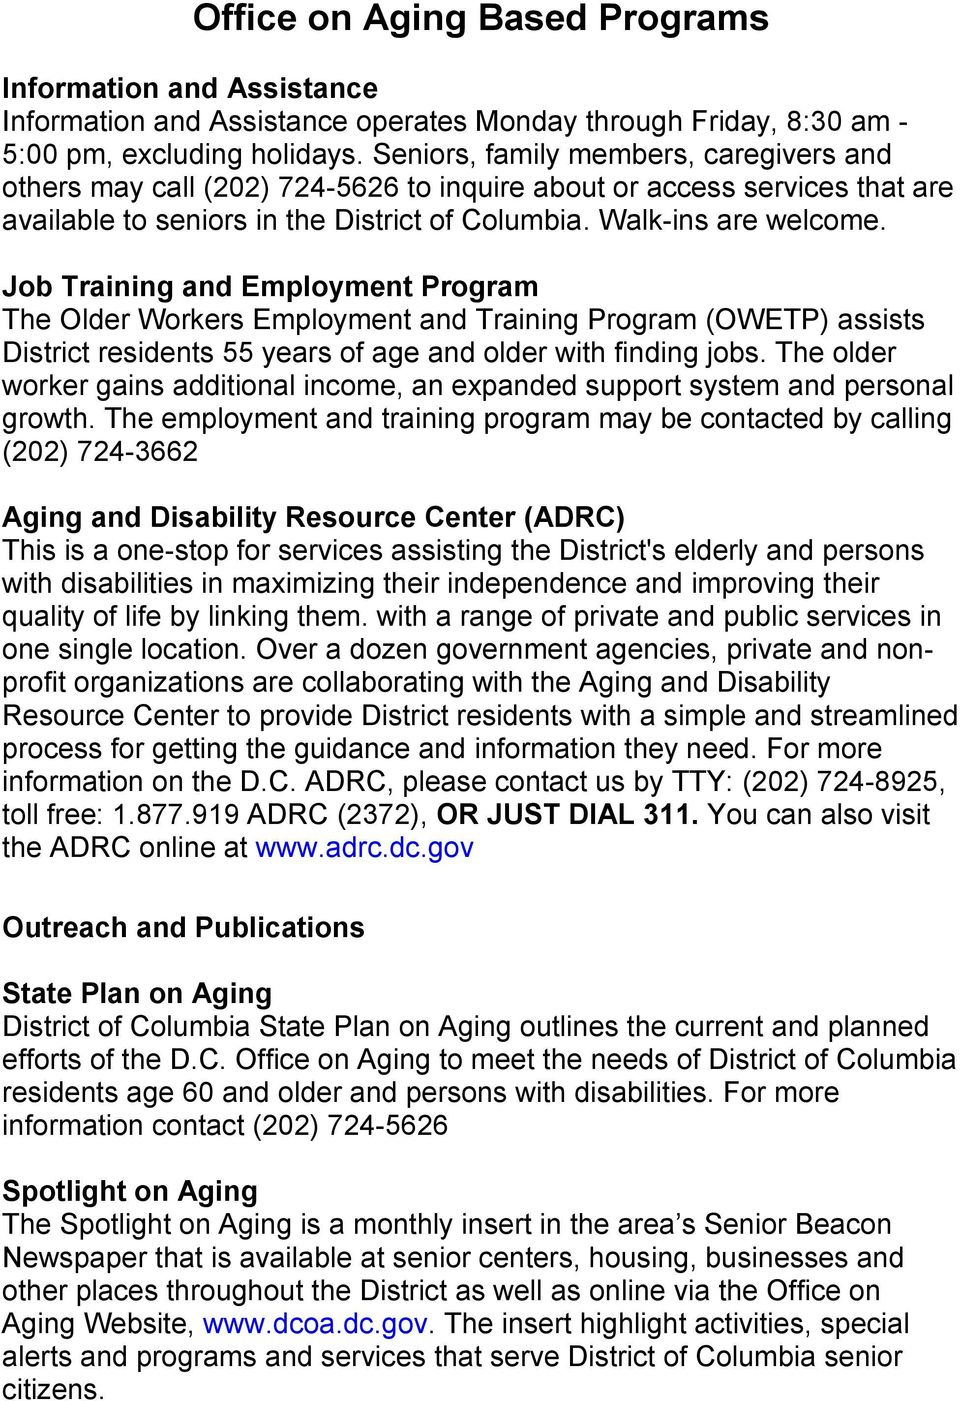 Job Training and Employment Program The Older Workers Employment and Training Program (OWETP) assists District residents 55 years of age and older with finding jobs.